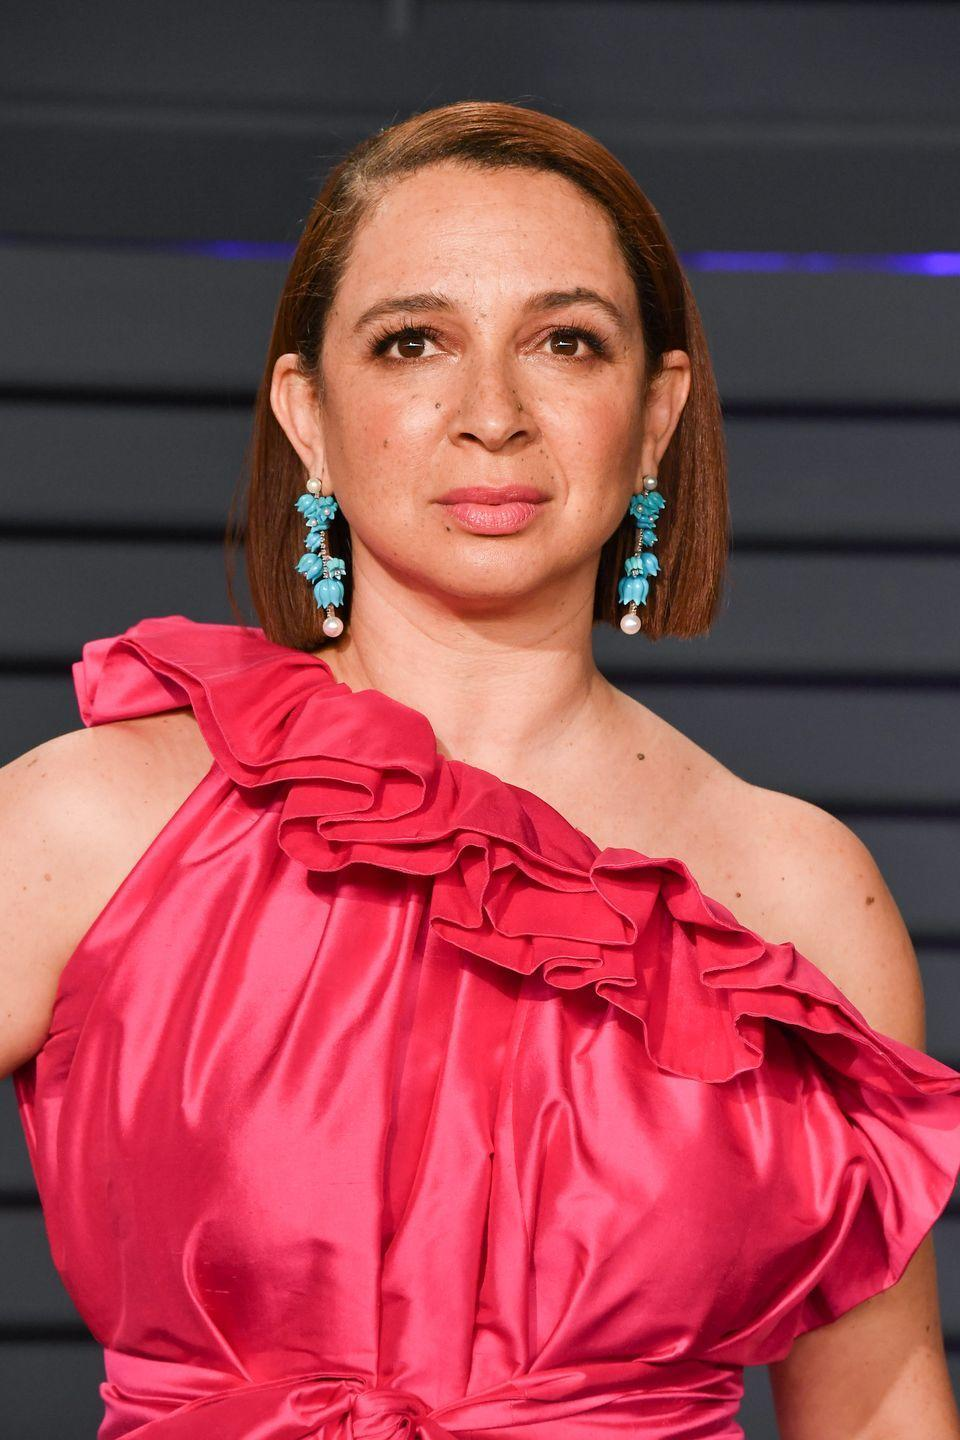 """<p>We can't imagine why, but Maya Rudolph's part in <em>Anchorman</em> didn't test well with screening audiences, so her role was <a href=""""https://www.digitalspy.com/movies/a536455/wake-up-ron-burgundy-the-anchorman-sequel-you-probably-havent-seen/"""" rel=""""nofollow noopener"""" target=""""_blank"""" data-ylk=""""slk:slashed post-production"""" class=""""link rapid-noclick-resp"""">slashed post-production</a>. Don't worry, Rudolph wasn't alone—her <em>Saturday Night Live </em>costar Amy Poehler was cut out too. </p>"""